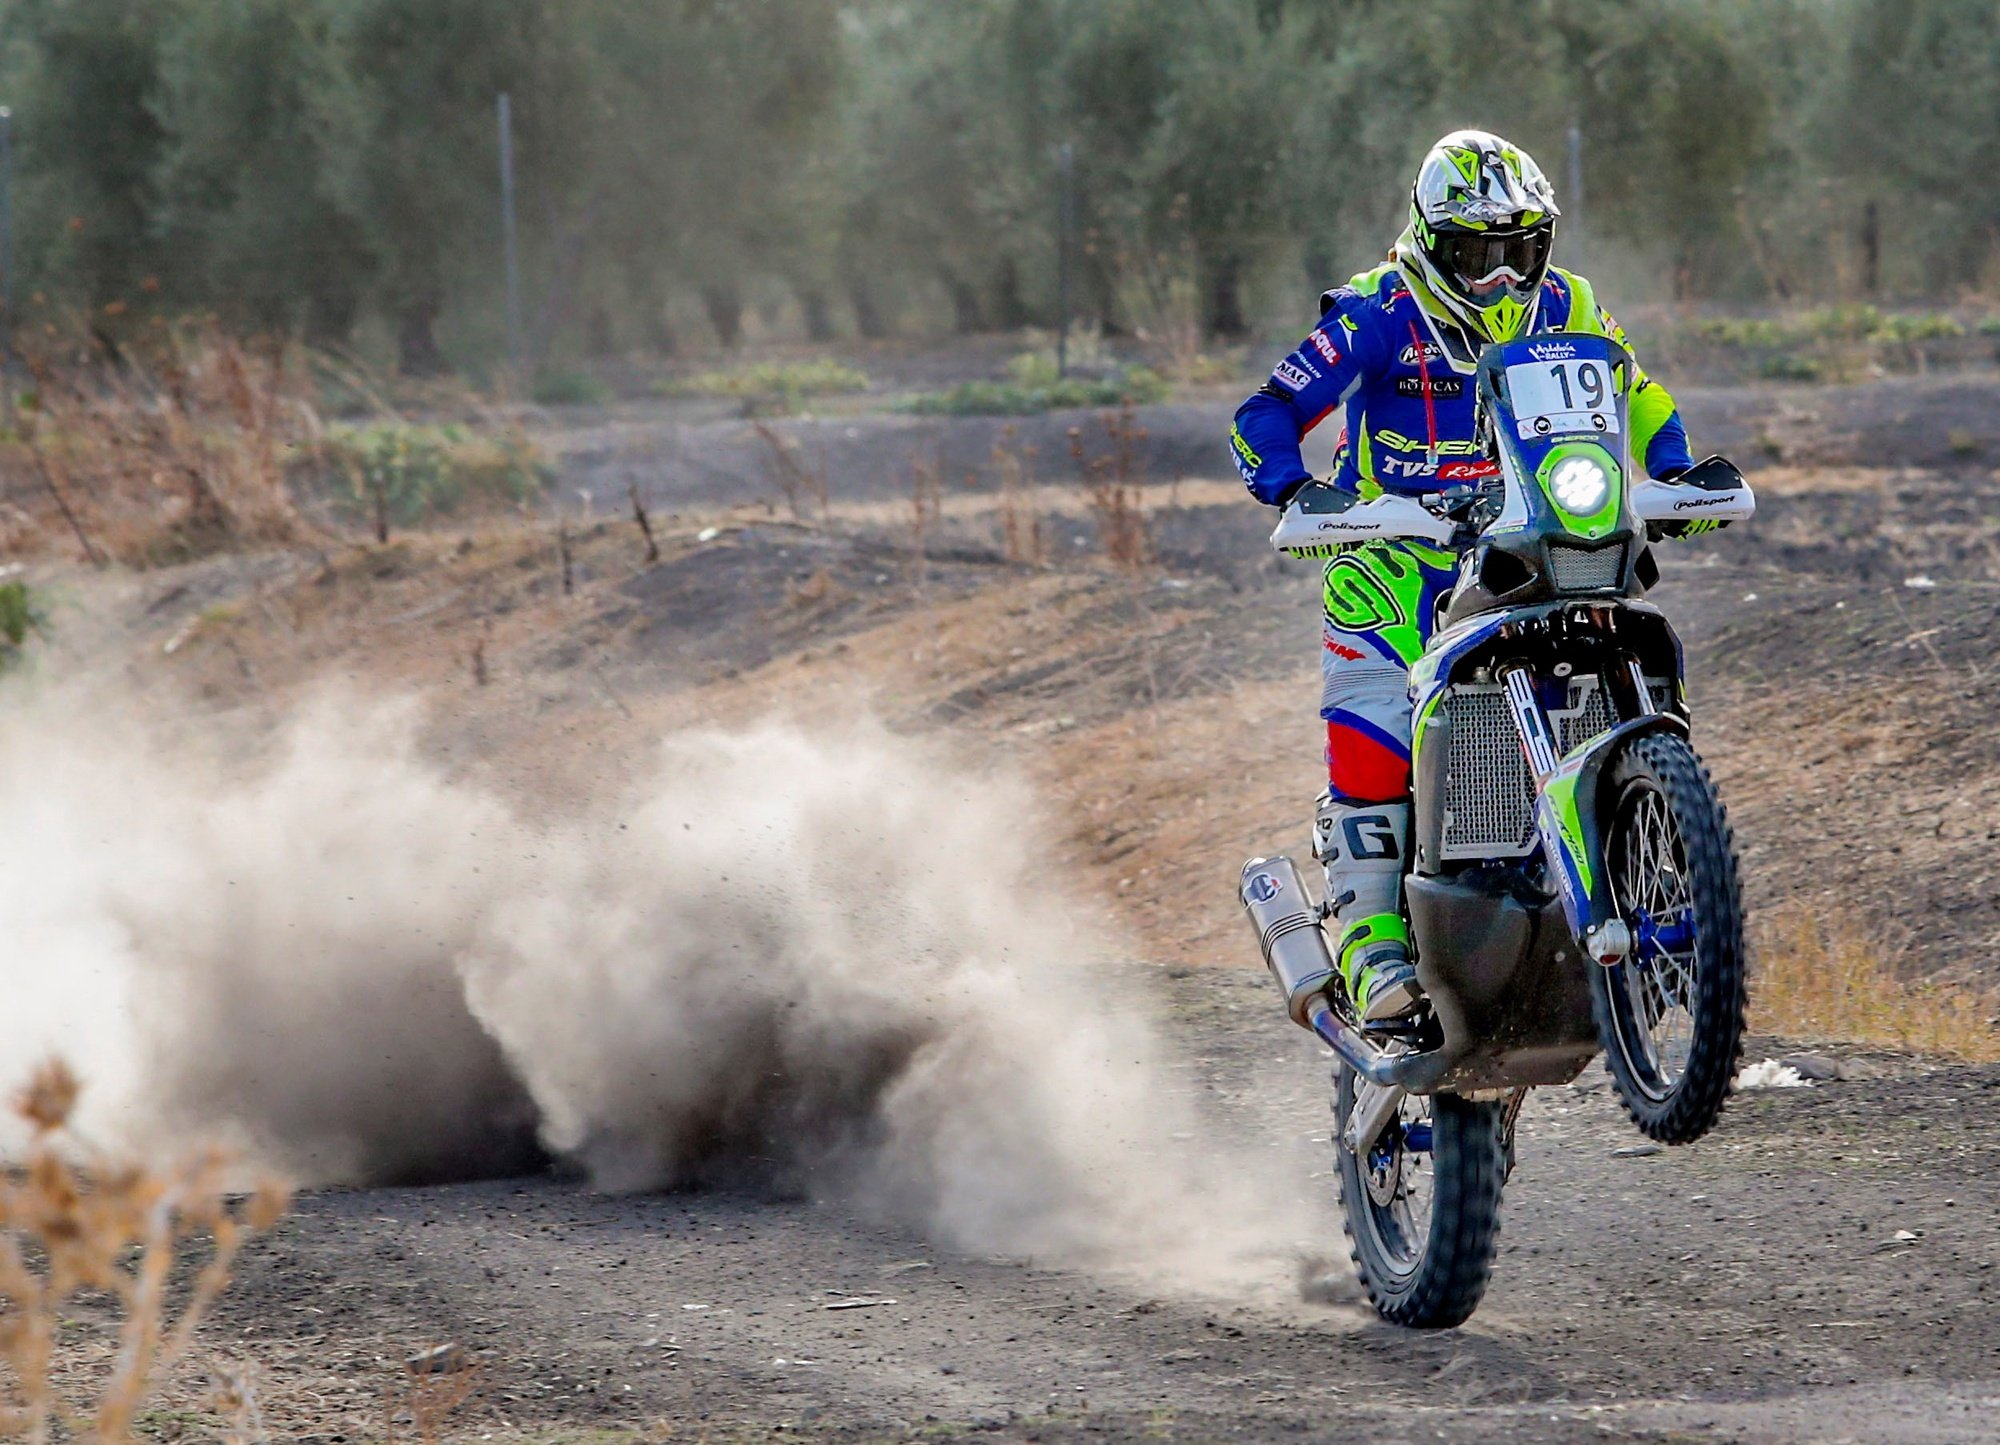 epa08731442 Portuguese motorcyclist Rui Goncalves of Sherco TVS Rally Factory in action during the third stage of the Andalucia Rally 2020 in Arahal, Seville, Spain, 09 October 2020.  EPA/ROMAN RIOS